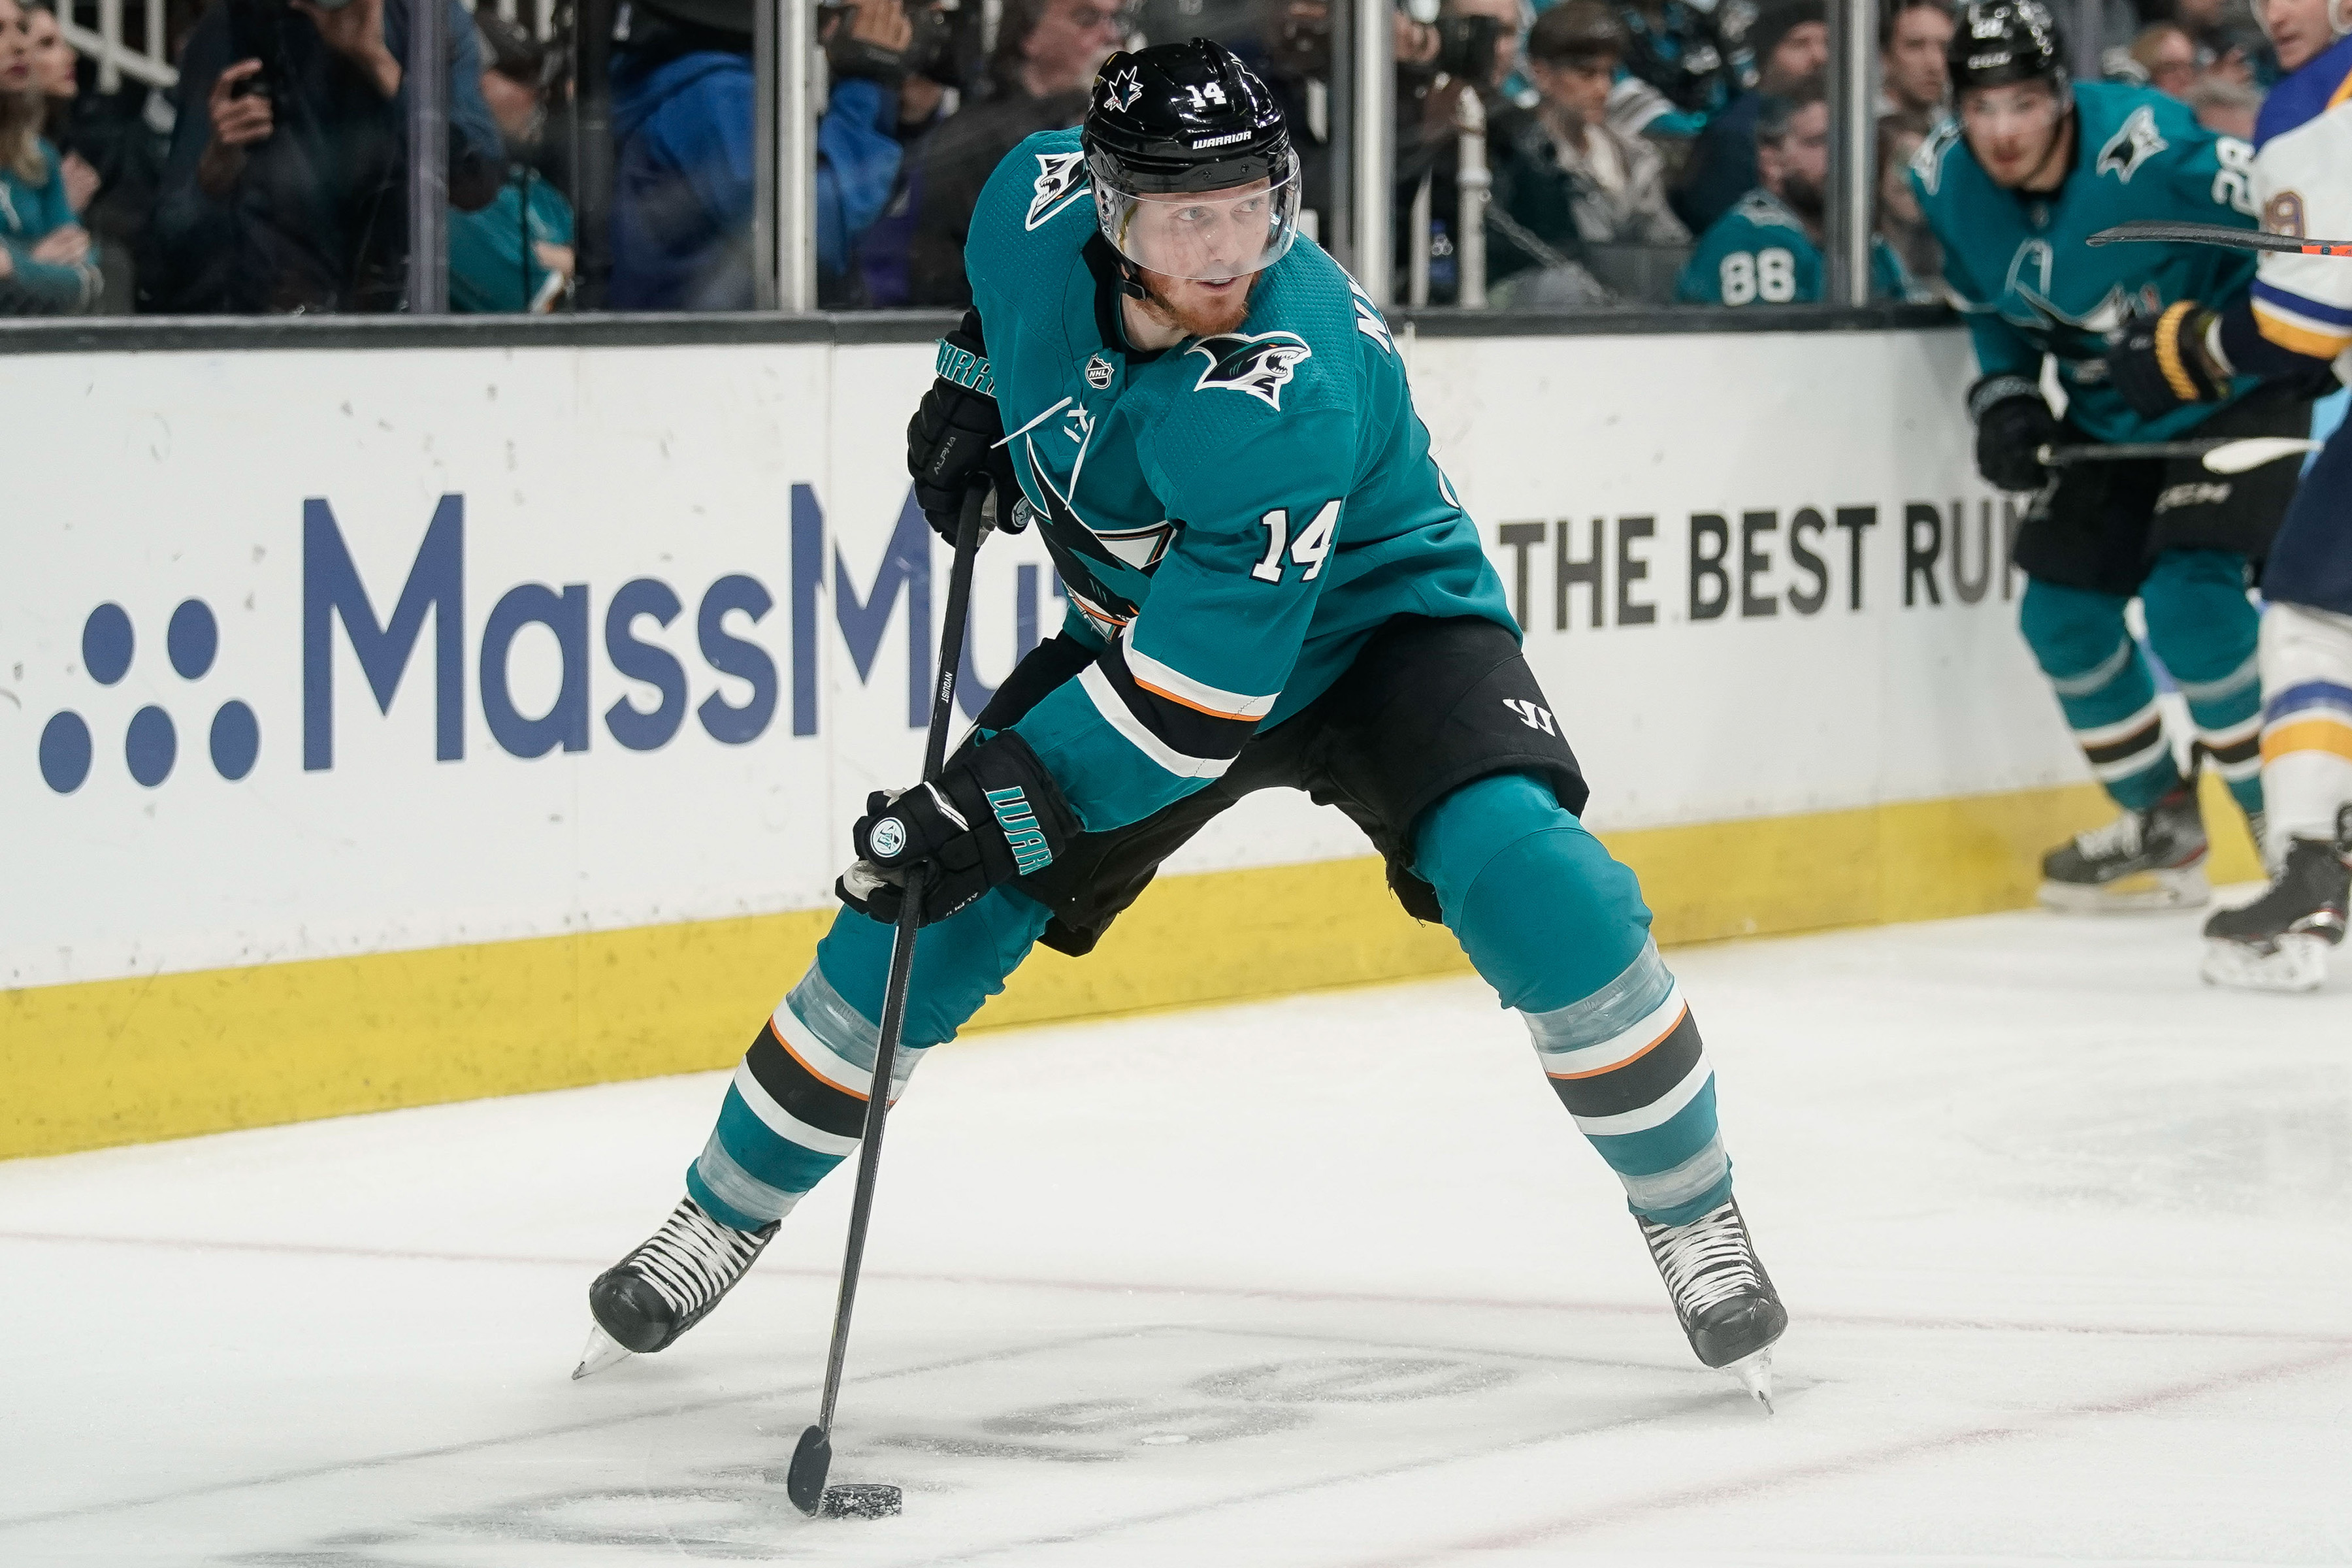 May 19, 2019; San Jose, CA, USA; San Jose Sharks center Gustav Nyquist controls the puck against the St. Louis Blues during the second period in Game 5 of the Western Conference Final of the 2019 Stanley Cup Playoffs at SAP Center at San Jose.